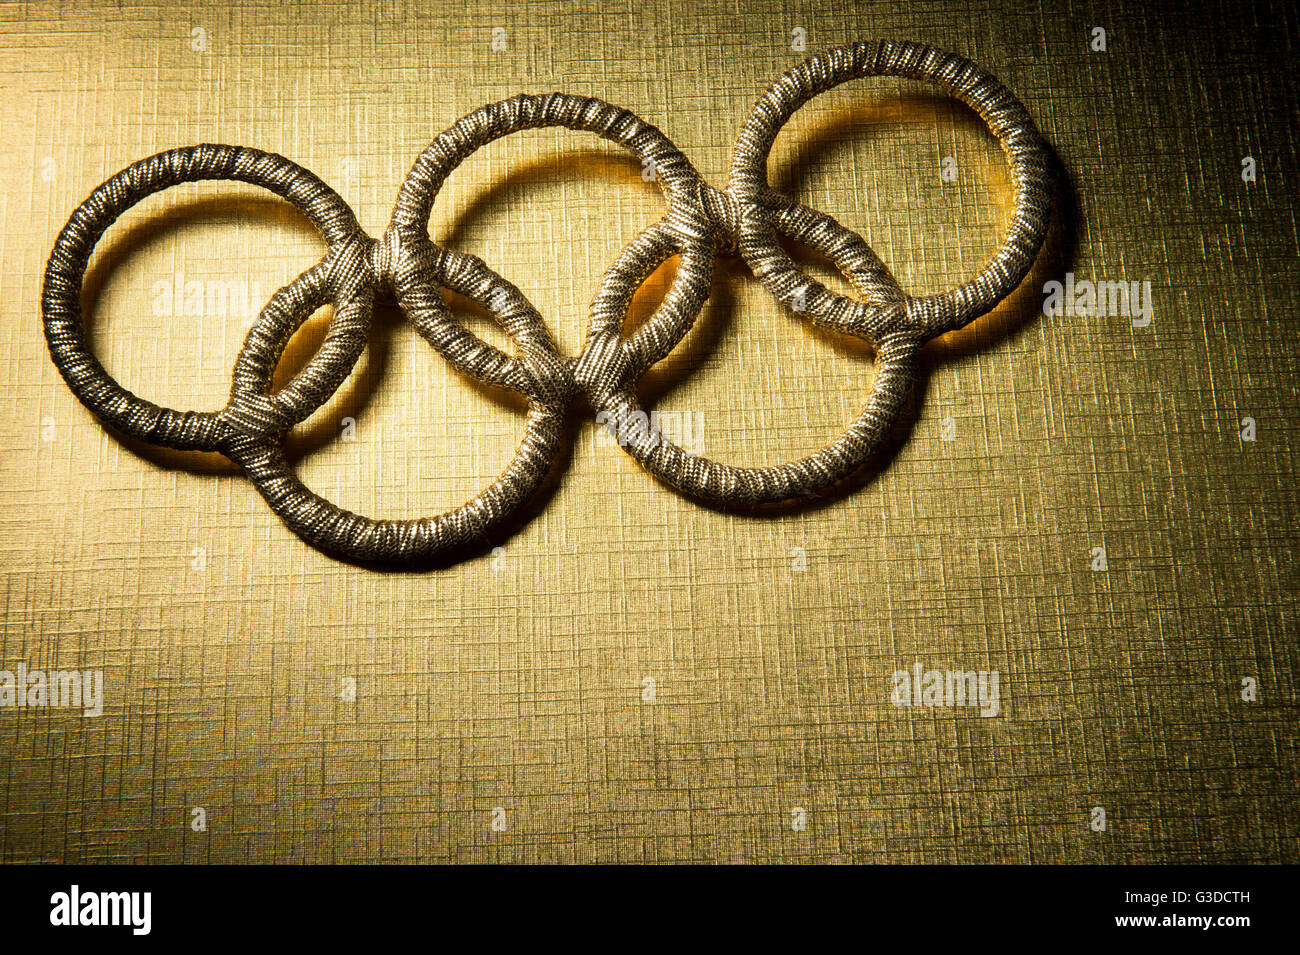 RIO DE JANEIRO - FEBRUARY 3, 2016: Gold Olympic rings sit spotlit on shiny golden background as a symbol of the - Stock Image